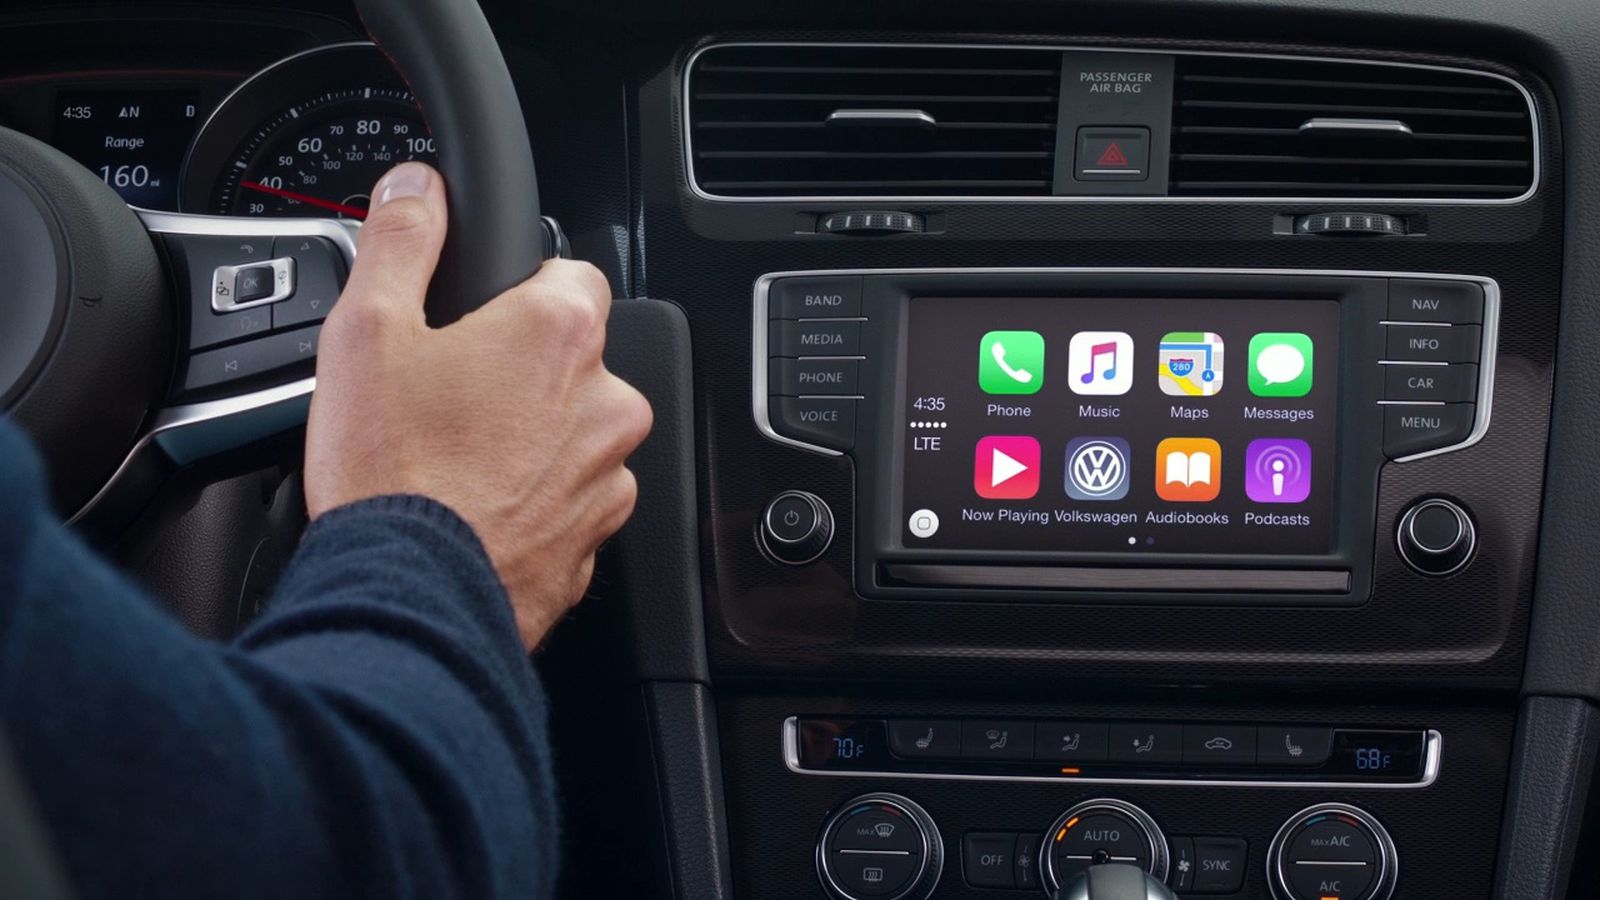 Volkswagen says Apple wouldn't let it demo wireless CarPlay - The Verge